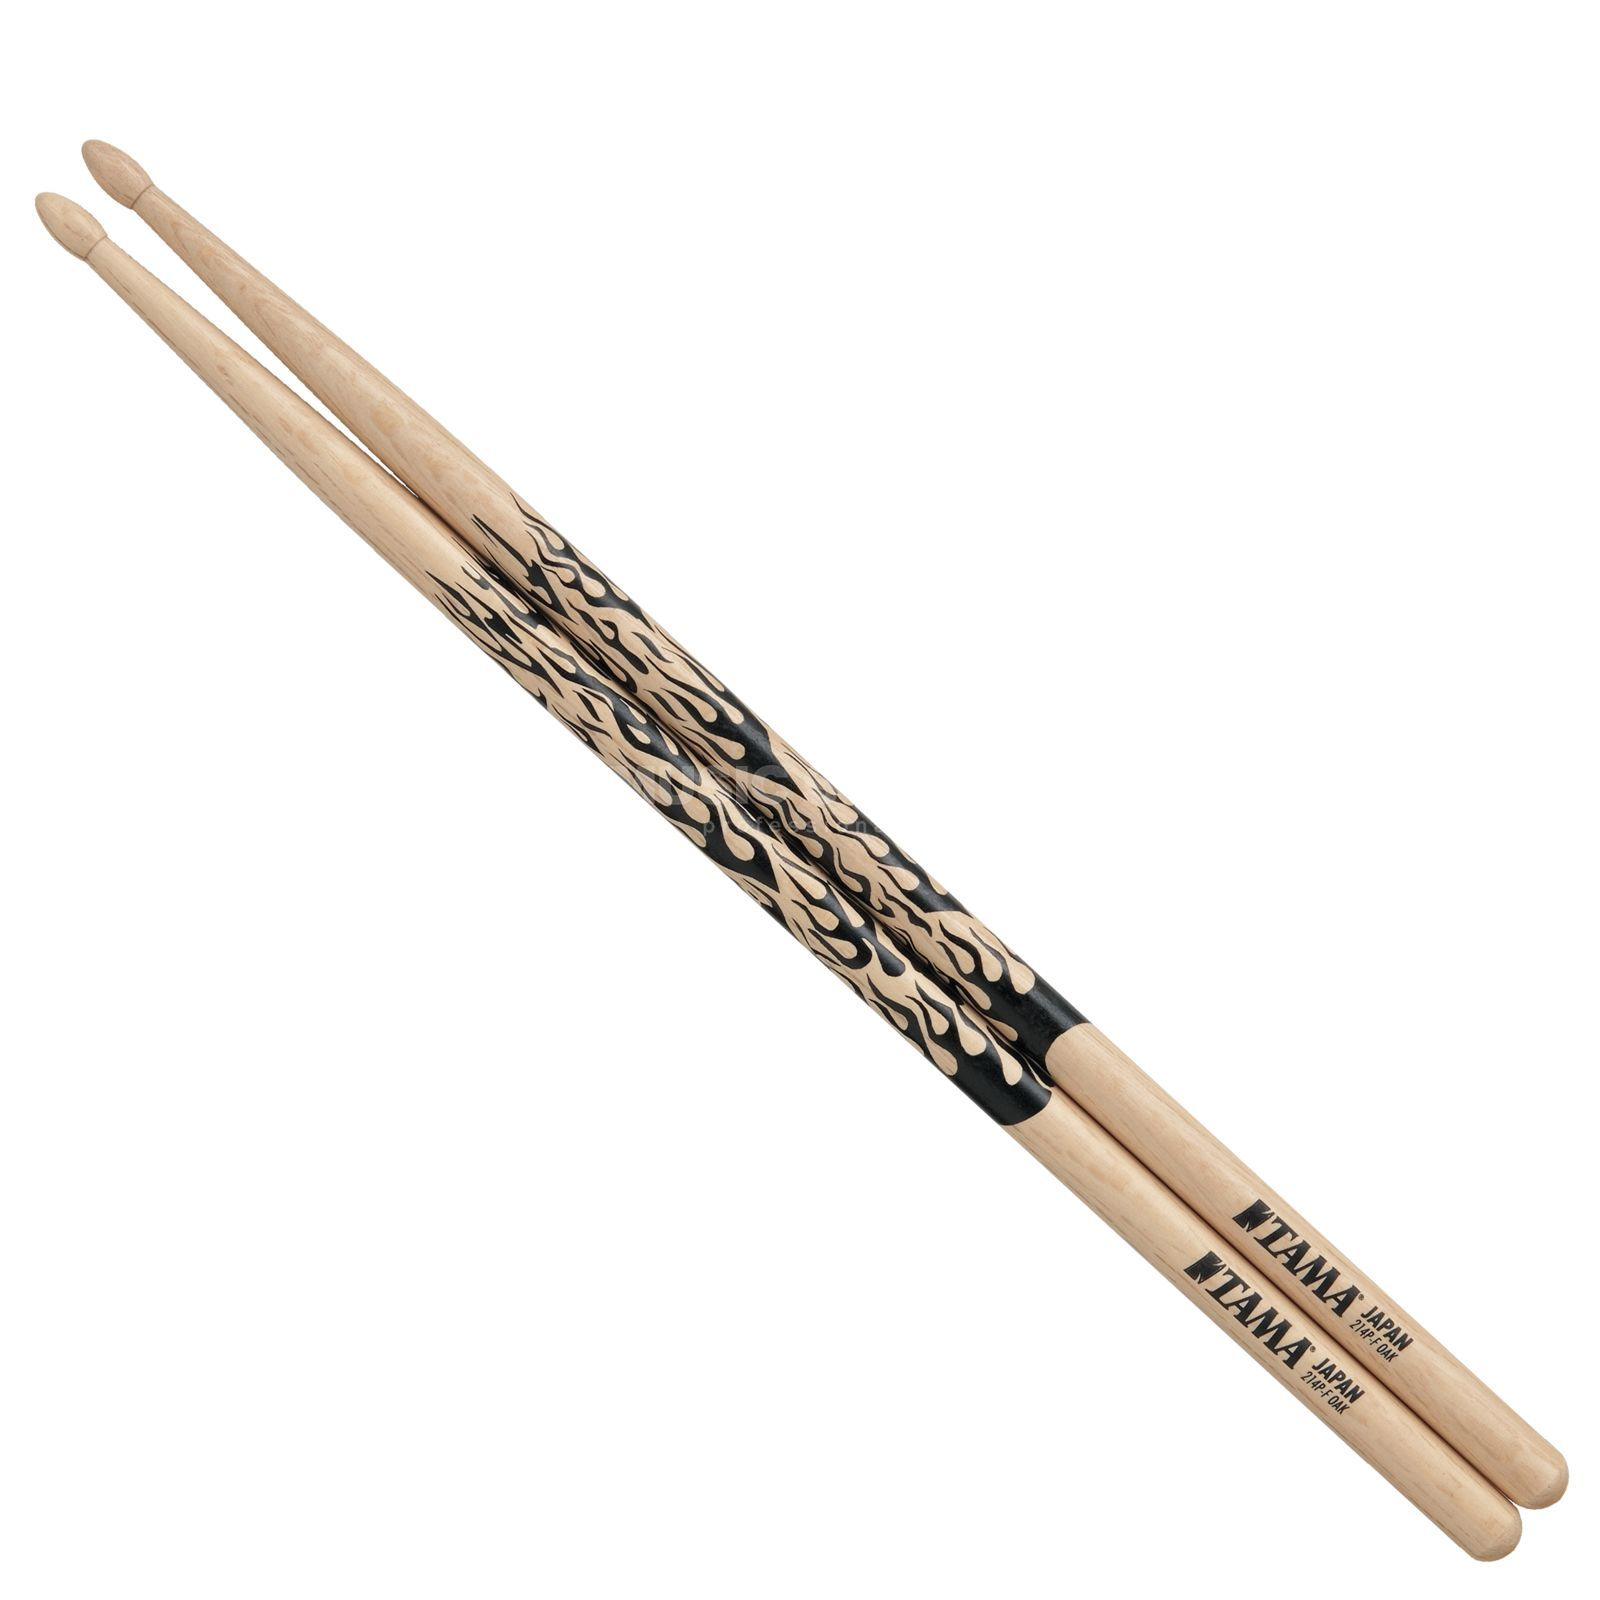 Tama Rhythmic Fire Sticks 5B-F Japanese Oak Produktbild